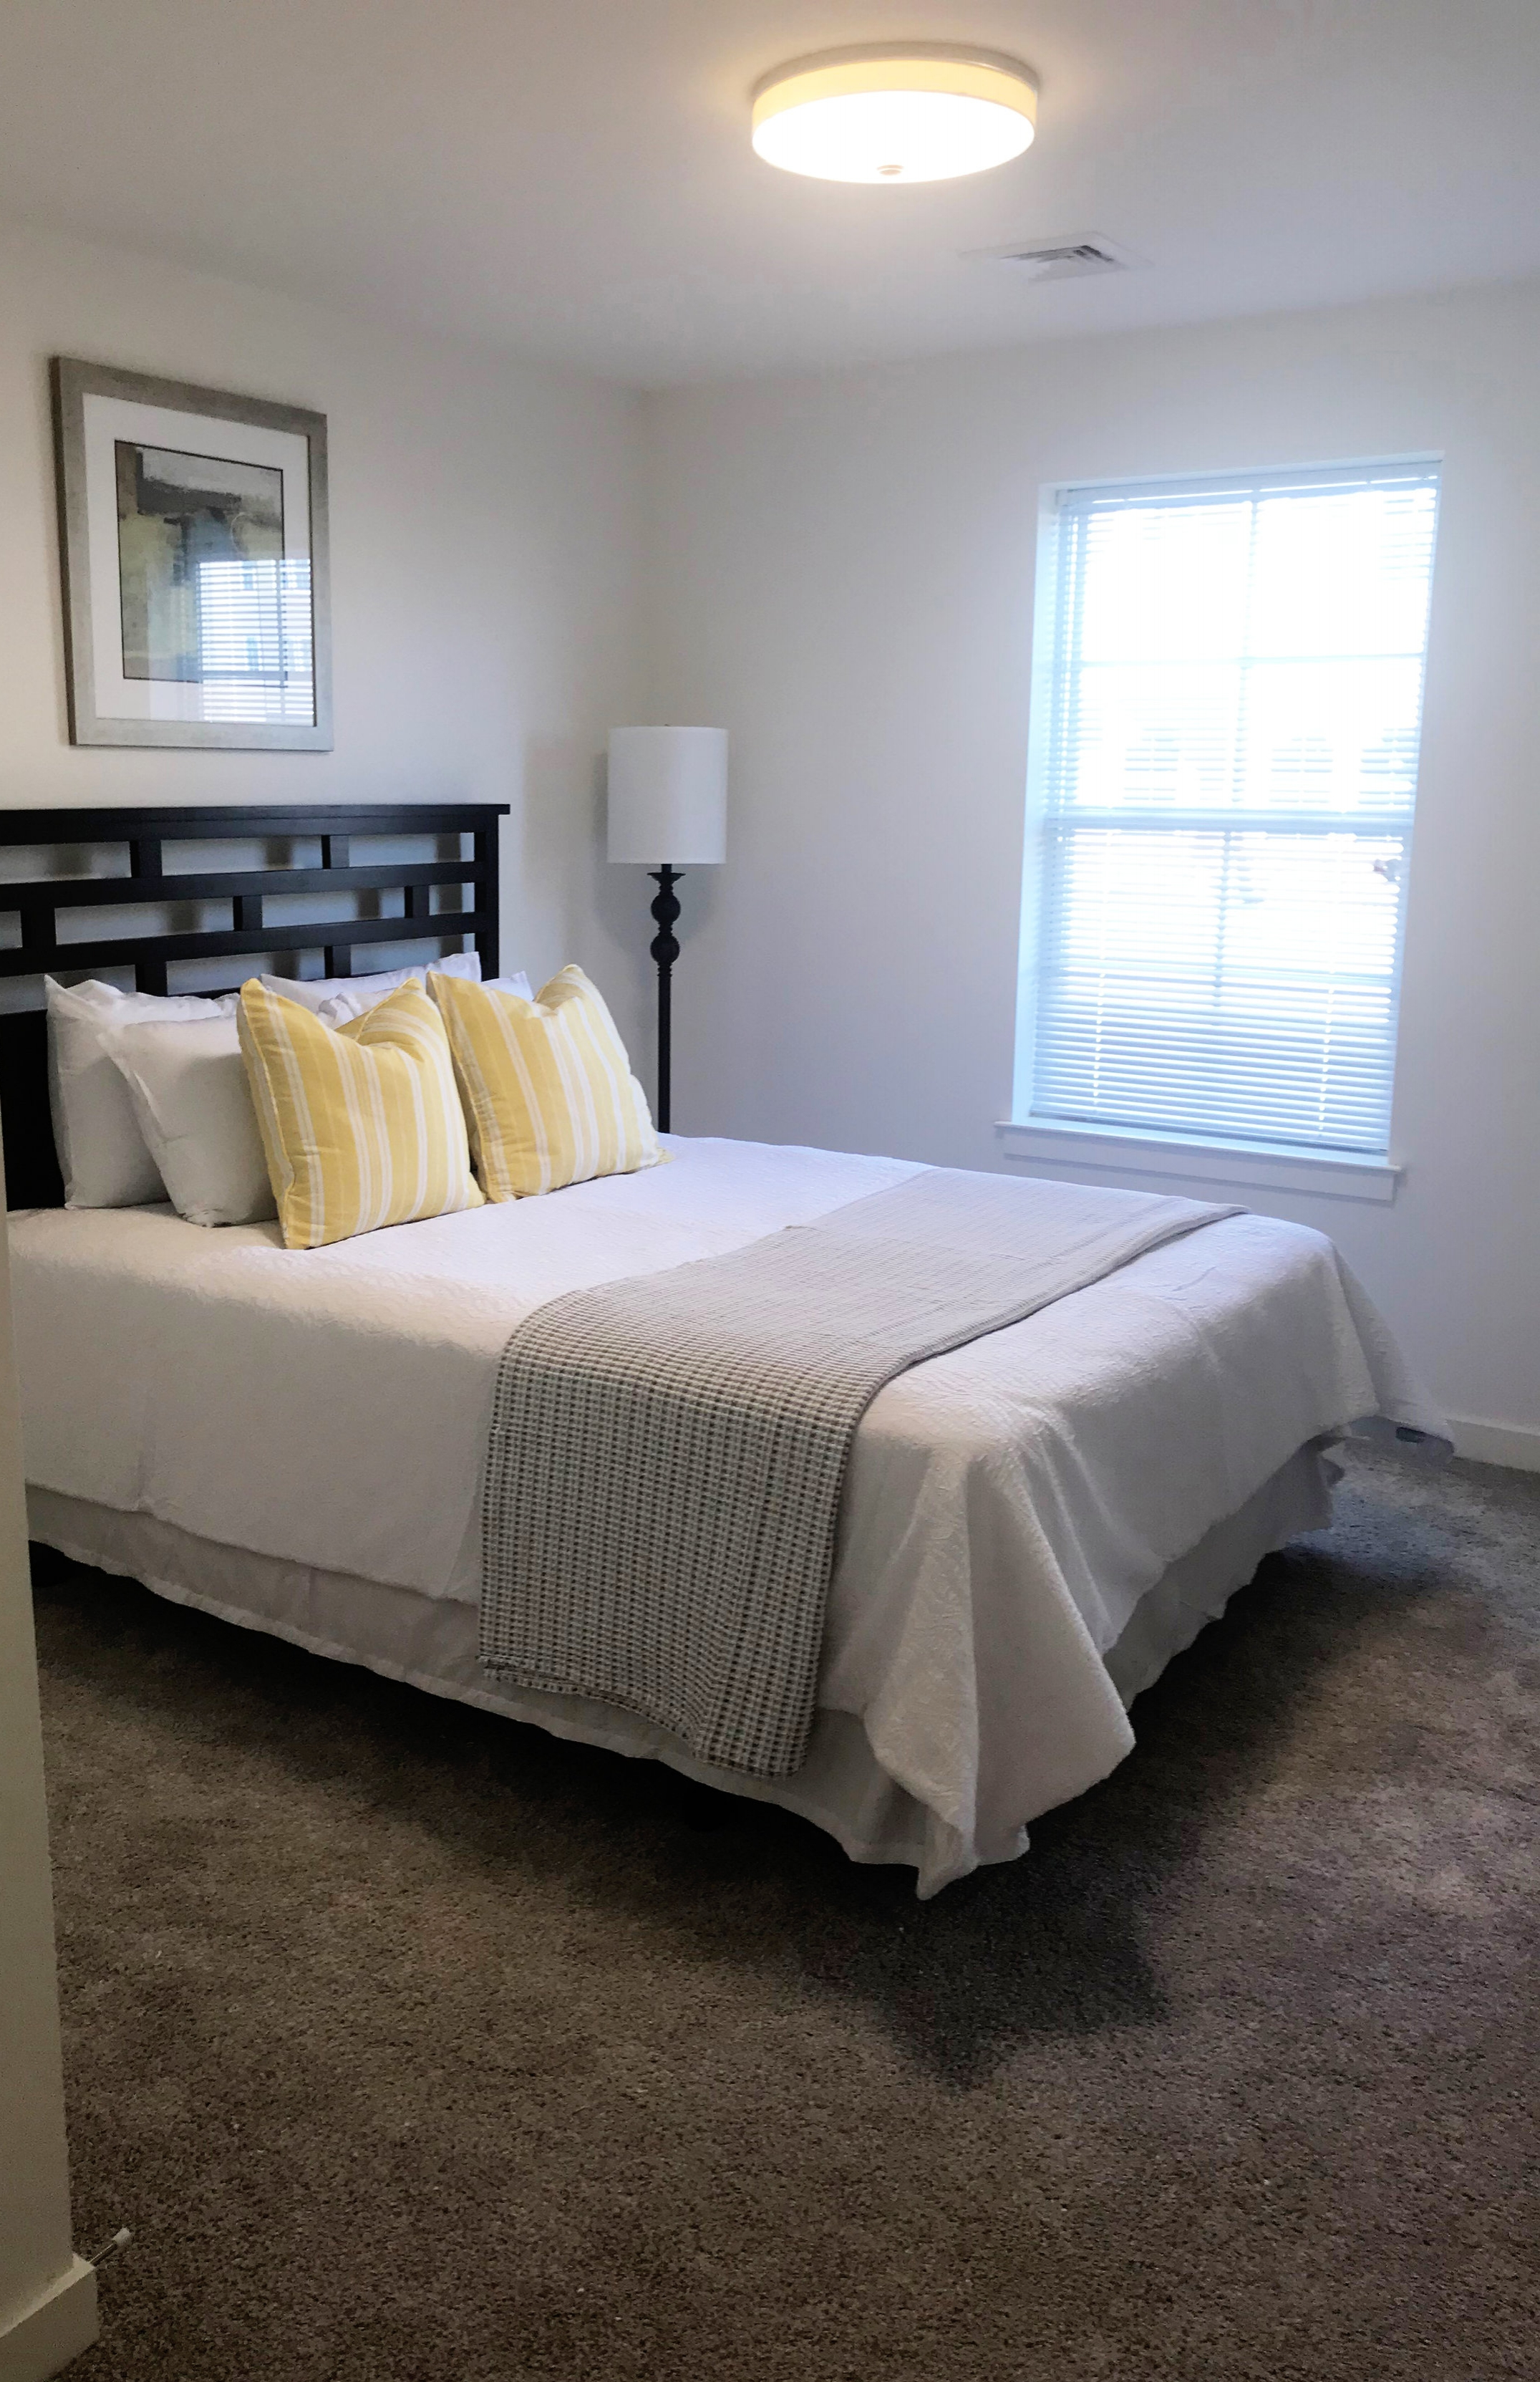 timbercreek_apartments_bedroom_brandmint_05.29.2018.jpg